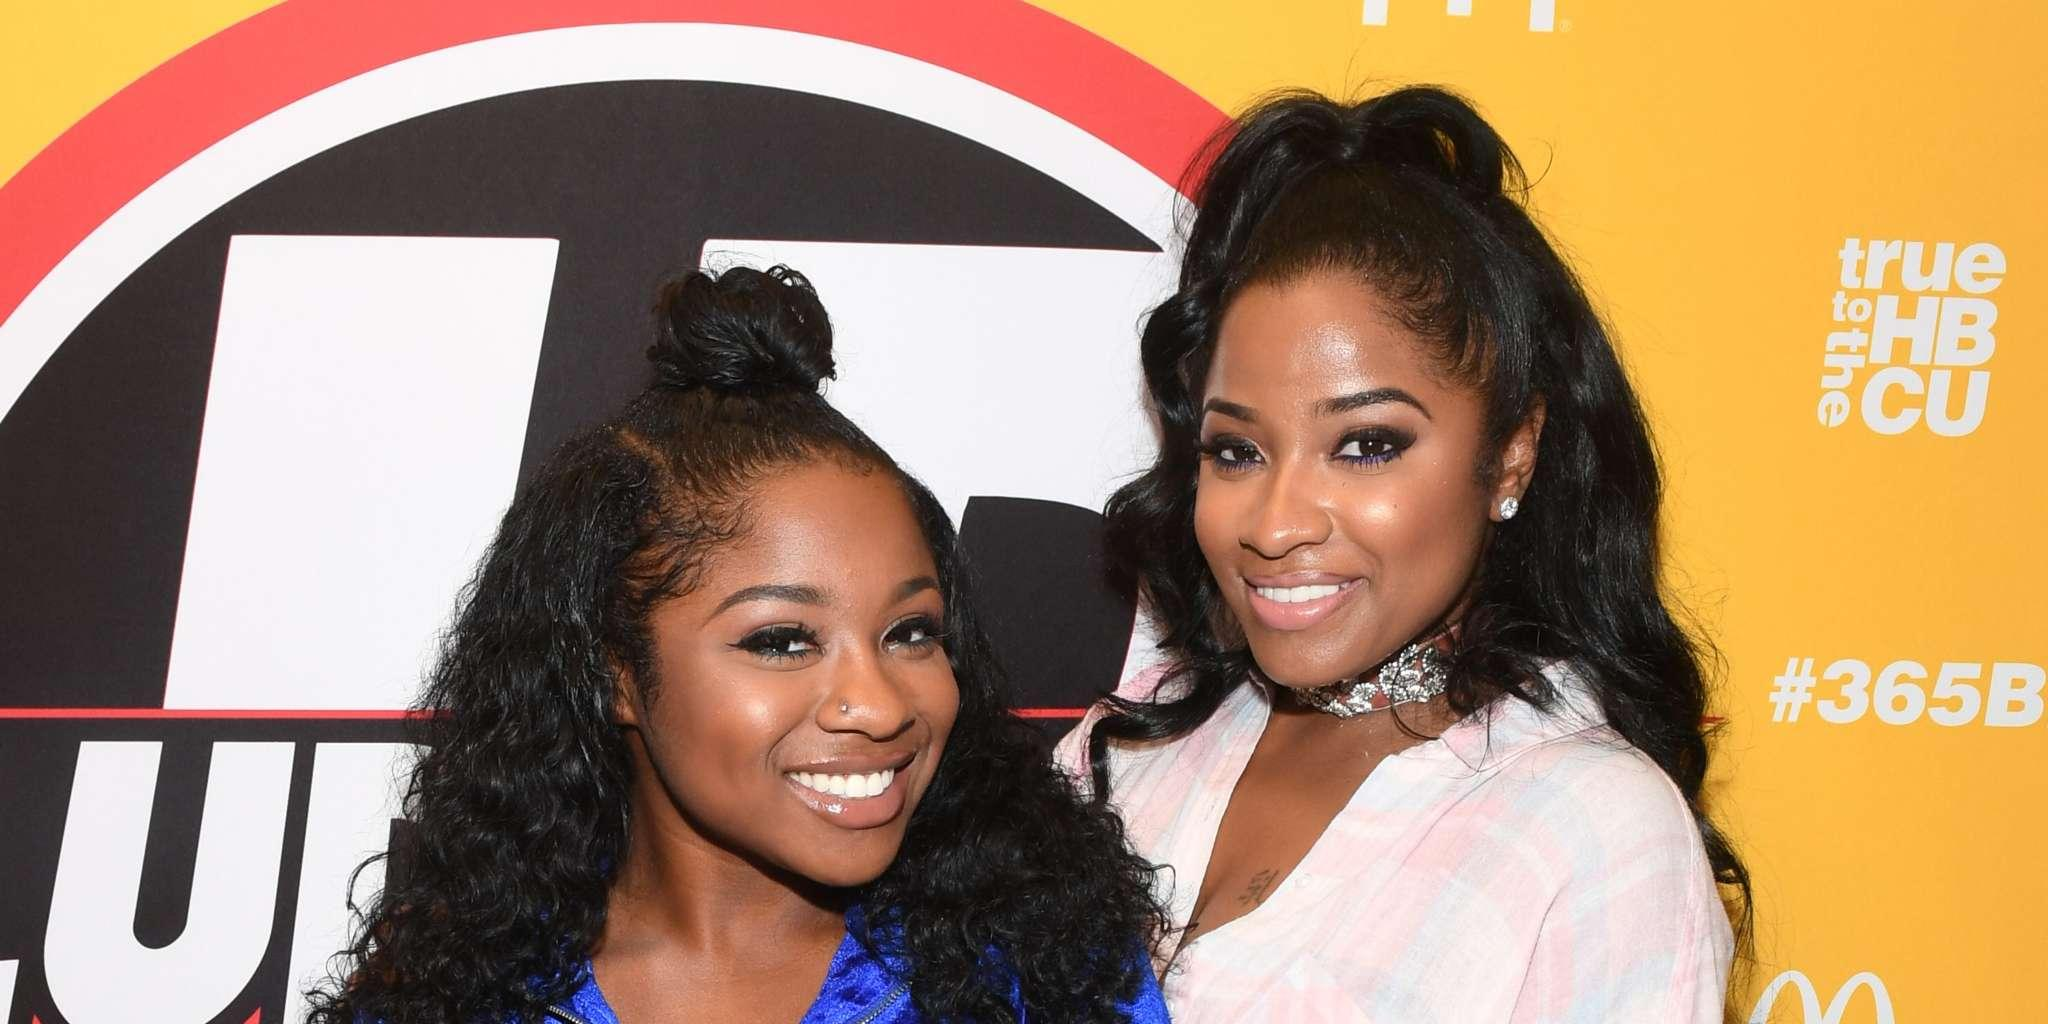 Toya Wright And Reginae Carter Share Their Story In Public With Other Mothers And Daughters - See The Pics & Footage